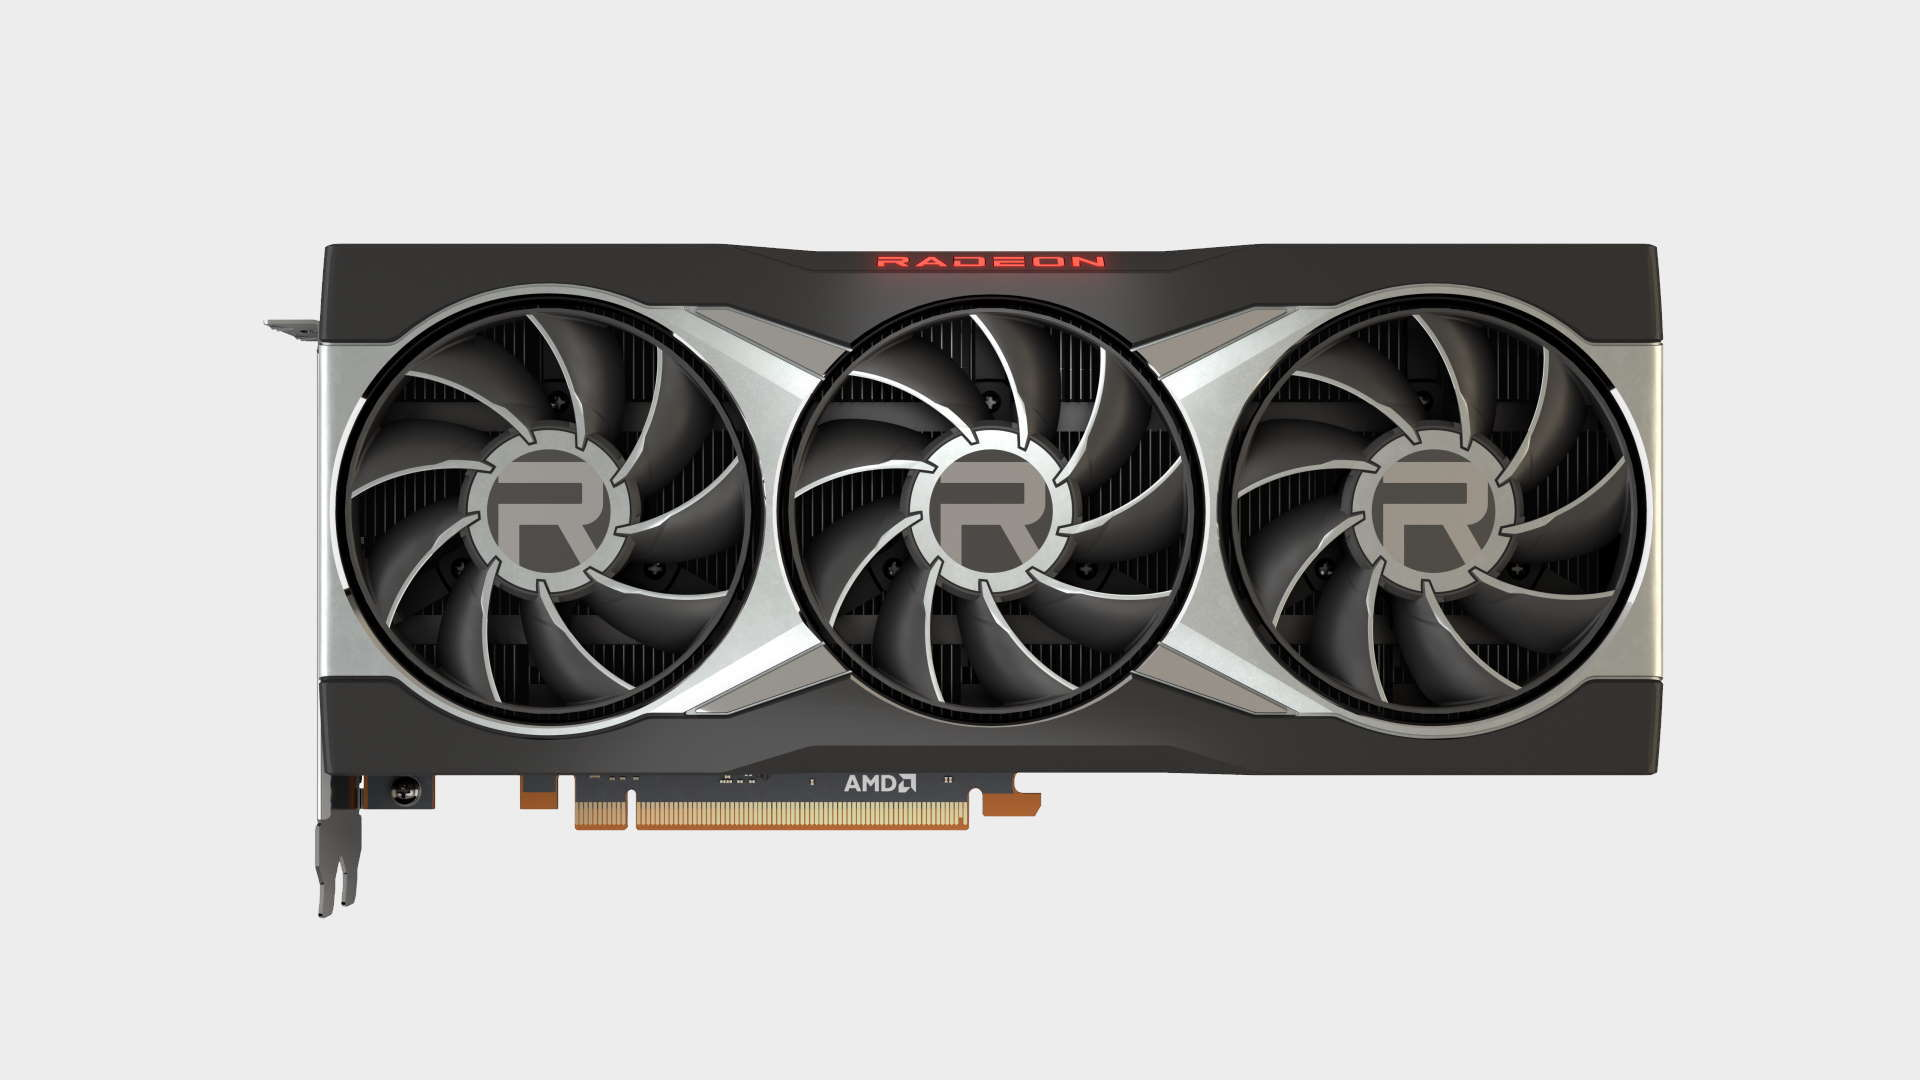 AMD Radeon RX 6900 XT reference graphics card shot from above on a blank background